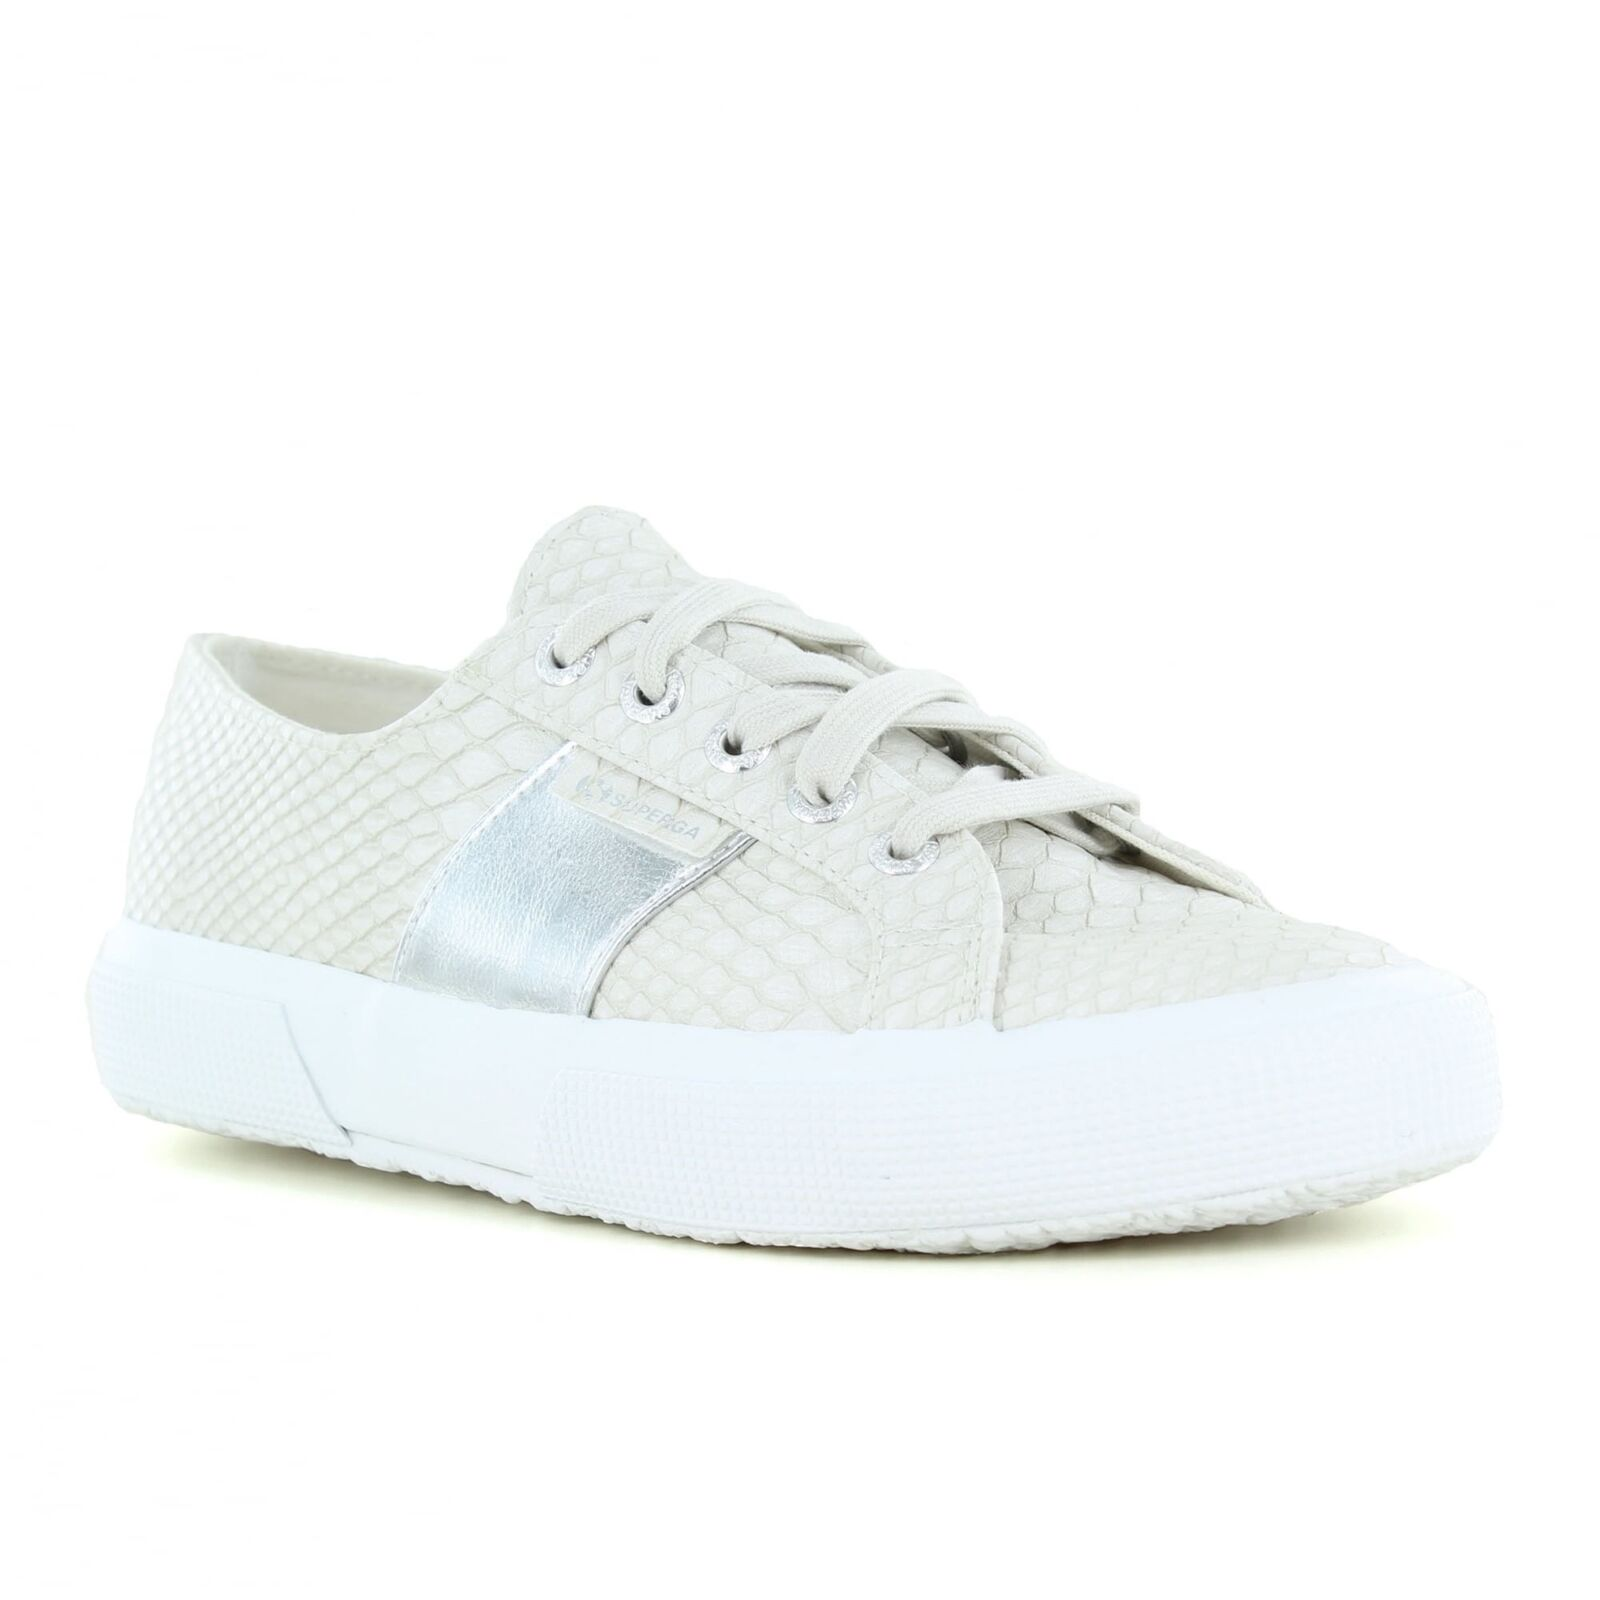 Superga PU Snake Damenschuhe Fashion Trainers - Light Grau